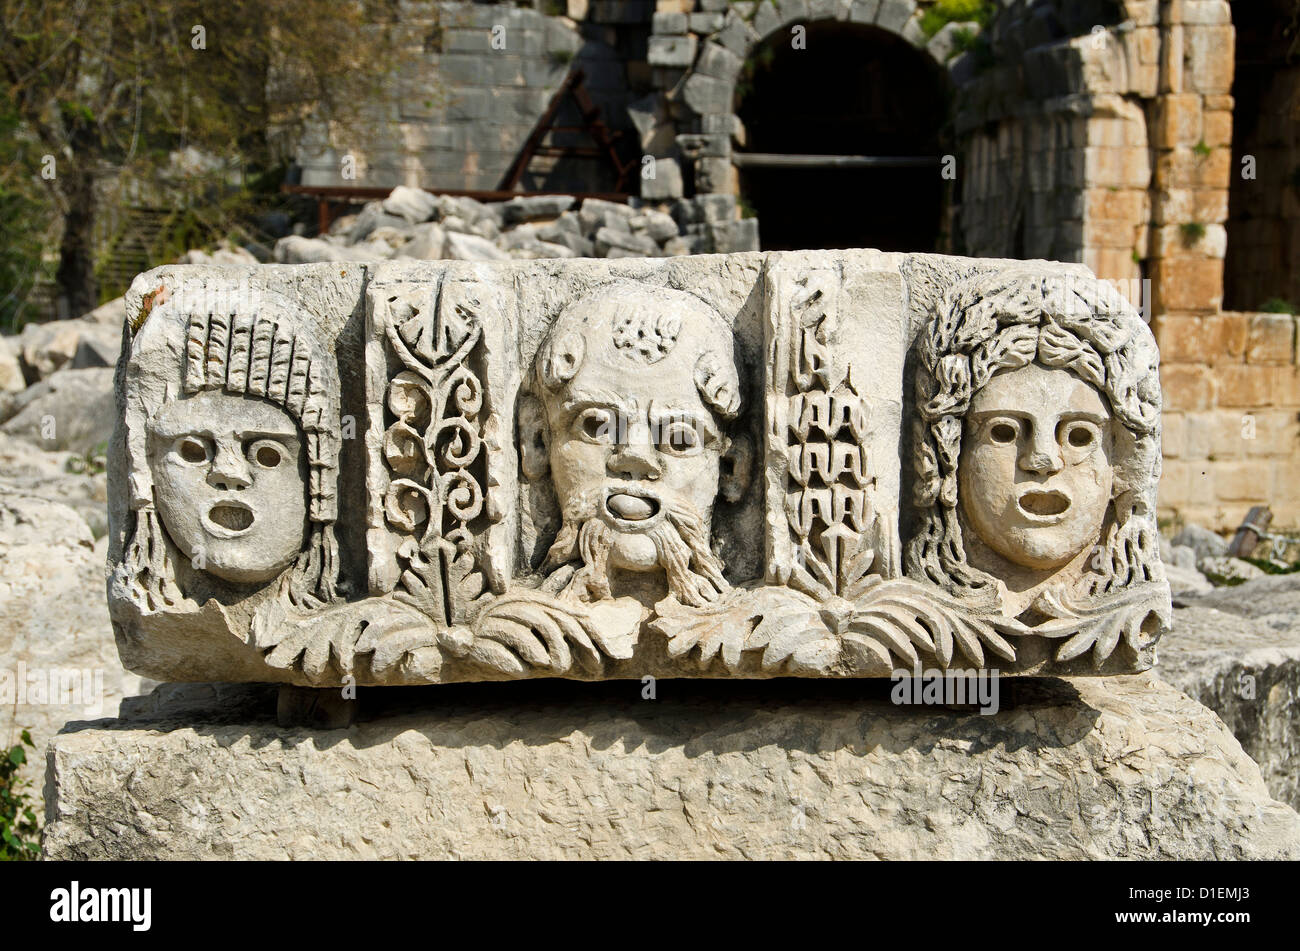 Antique theater masks made of stone in Myra, Turkey - Stock Image